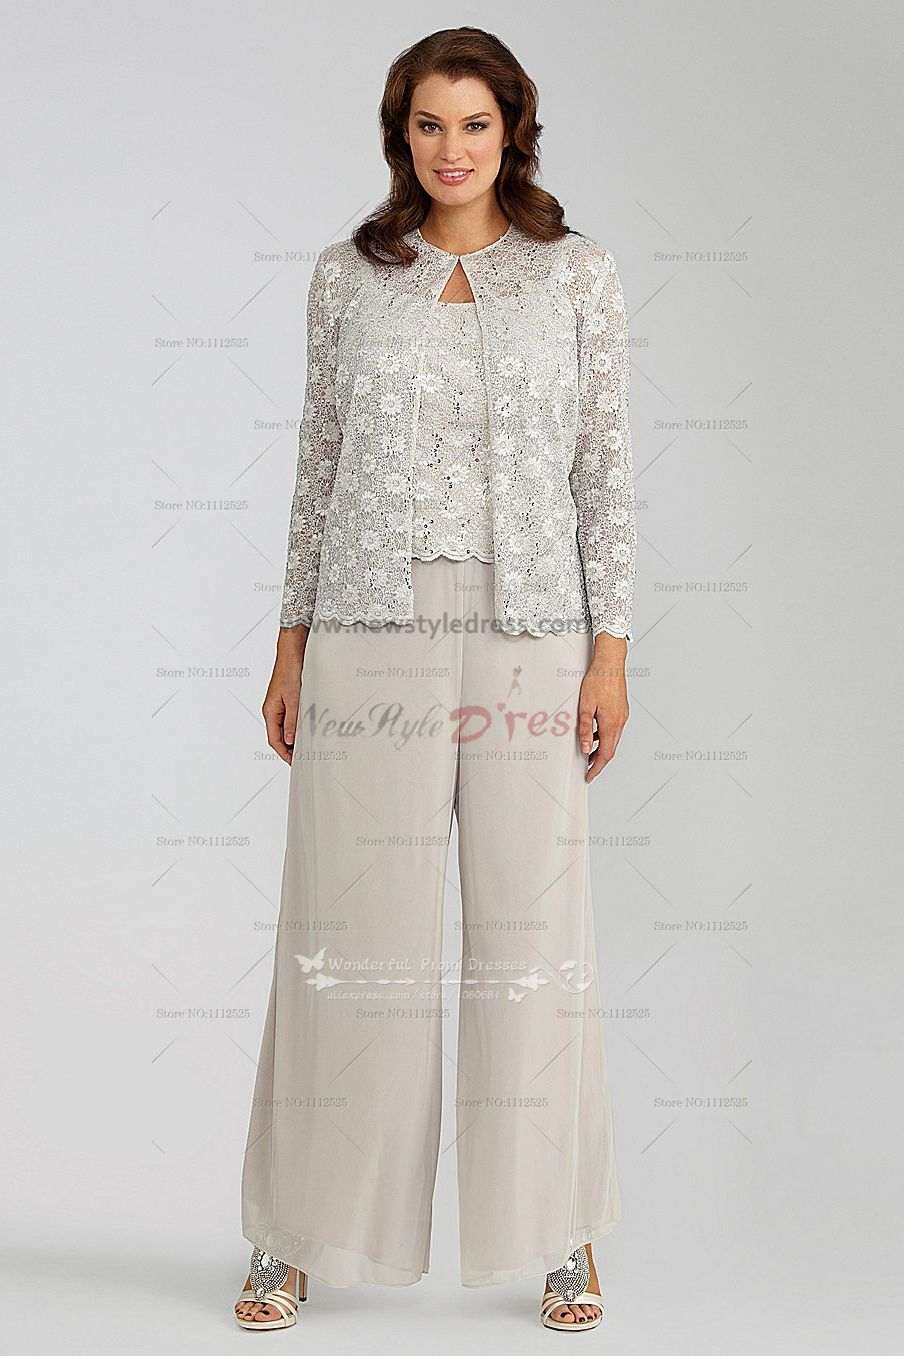 Elegant Lace 3 Piece Mother Of The Bride Pants Suit Nmo 029